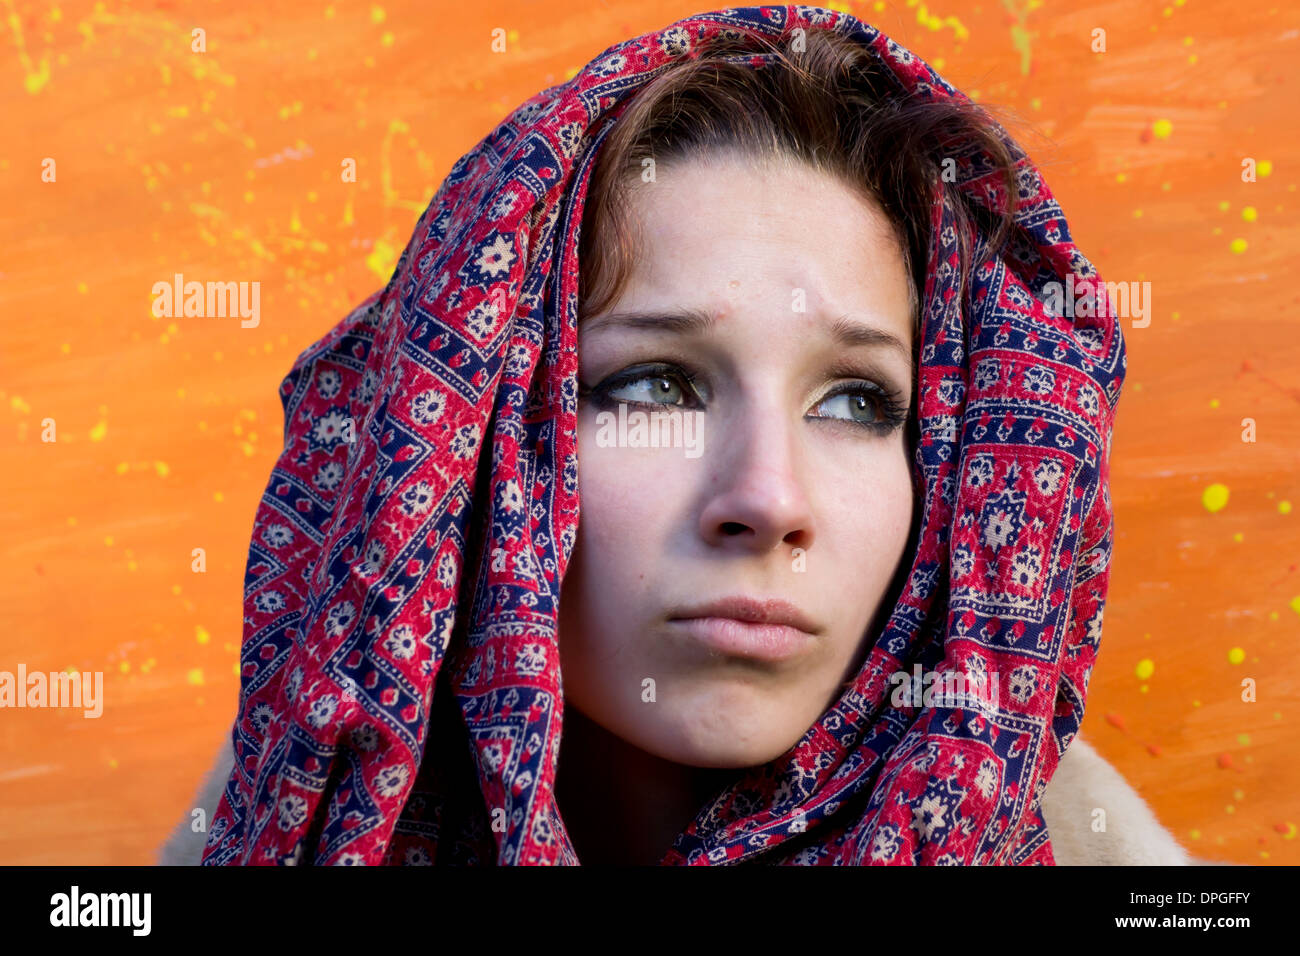 Sikh girl fair skin - Stock Image